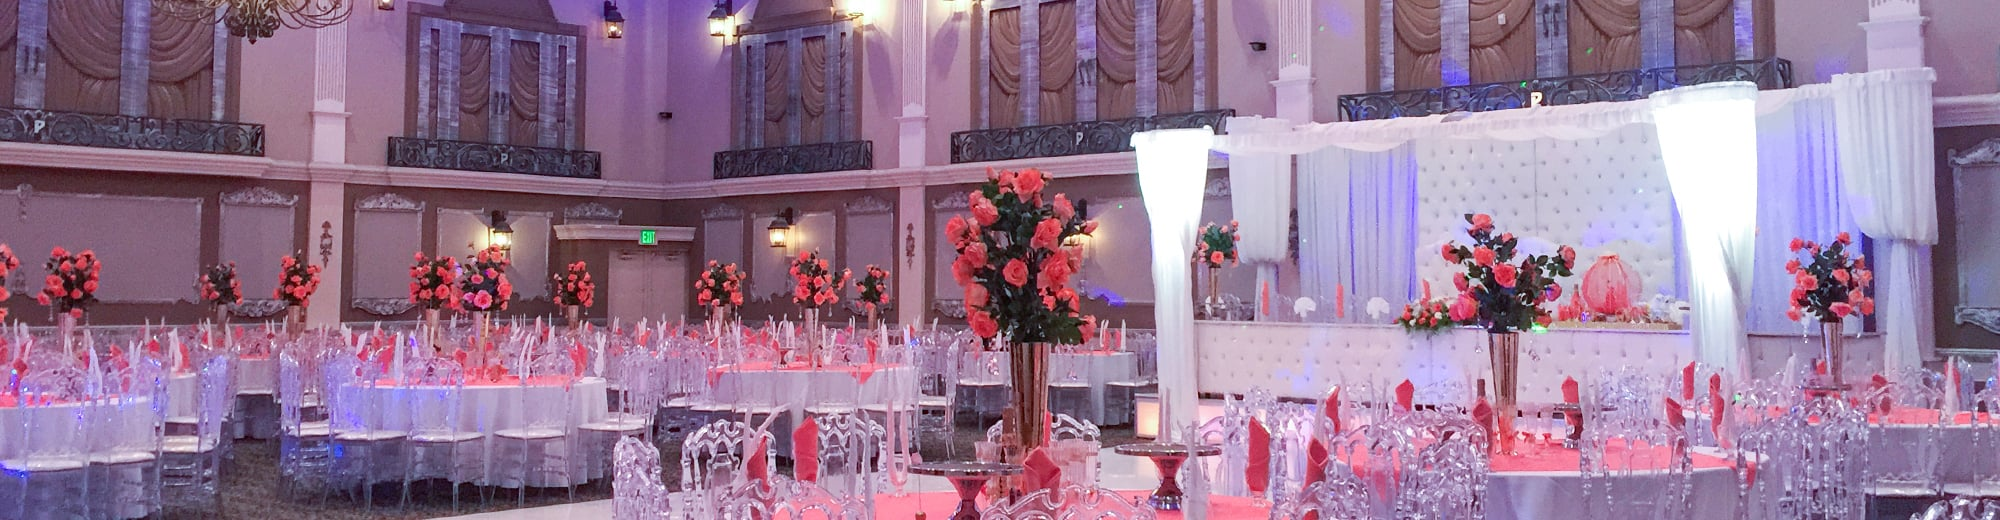 Corporate Venue @ Platinum Banquet Hall